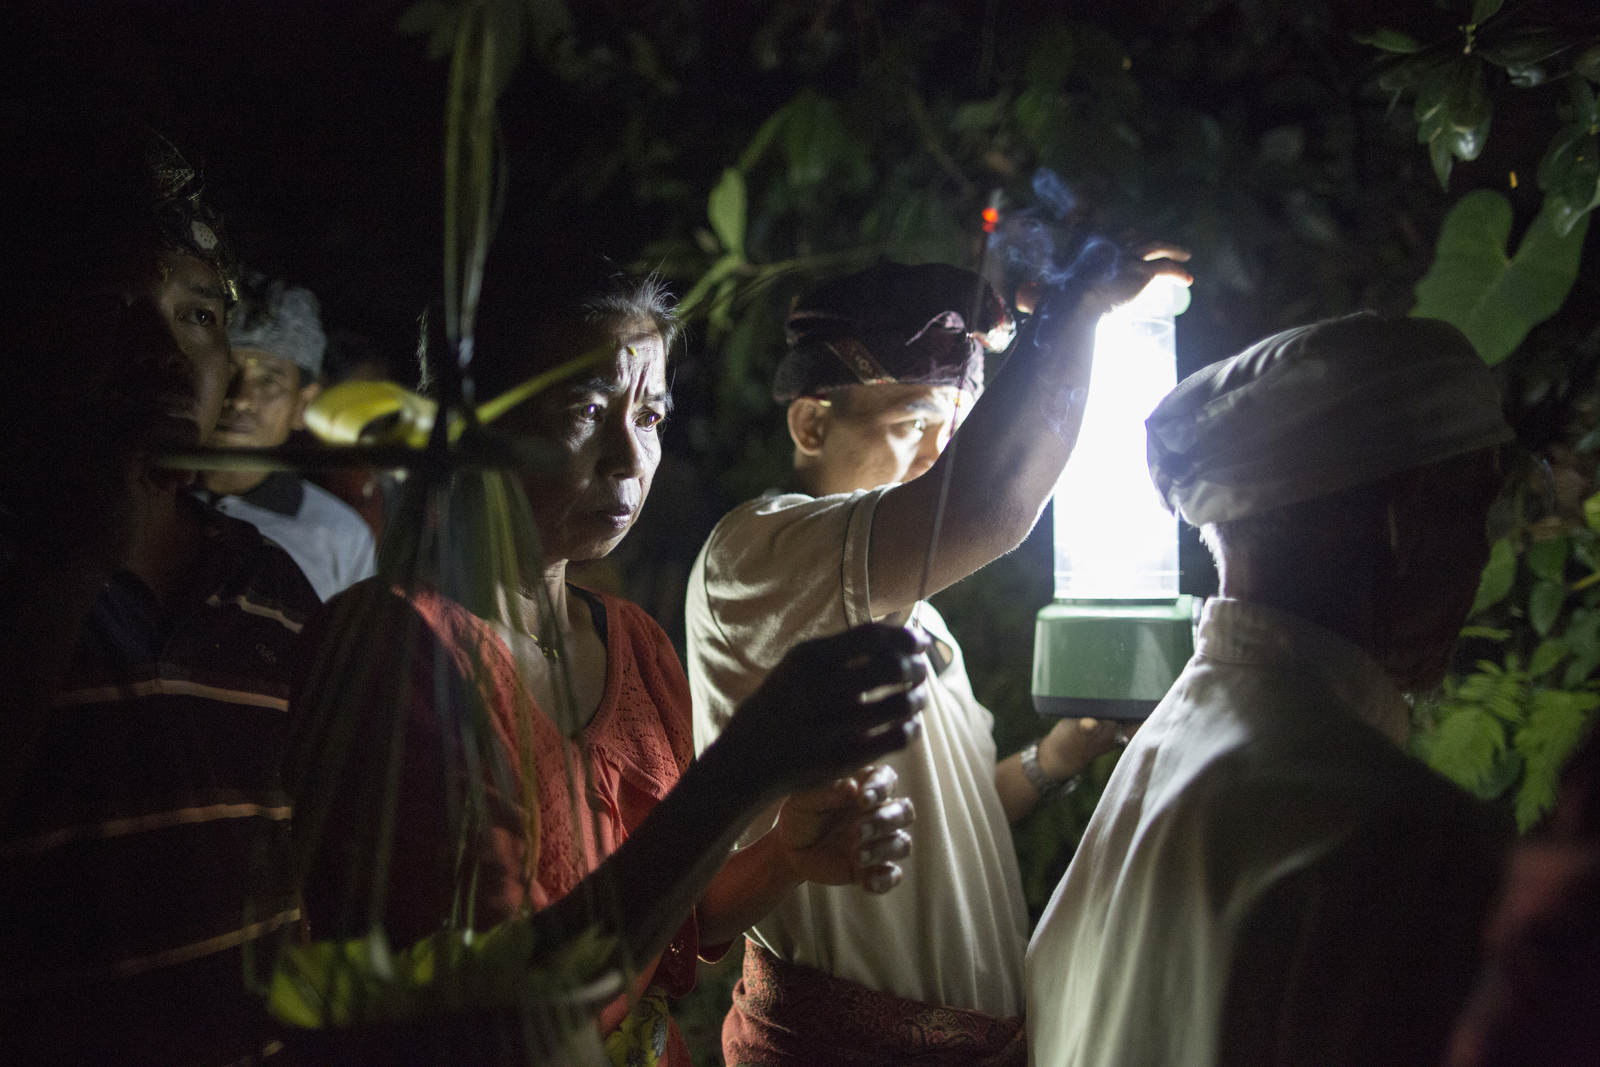 A woman says a prayer at ceremony at midnight by the banks of a river as part of the funeral procession for a high priestess in Gianyar, a part of central Bali.